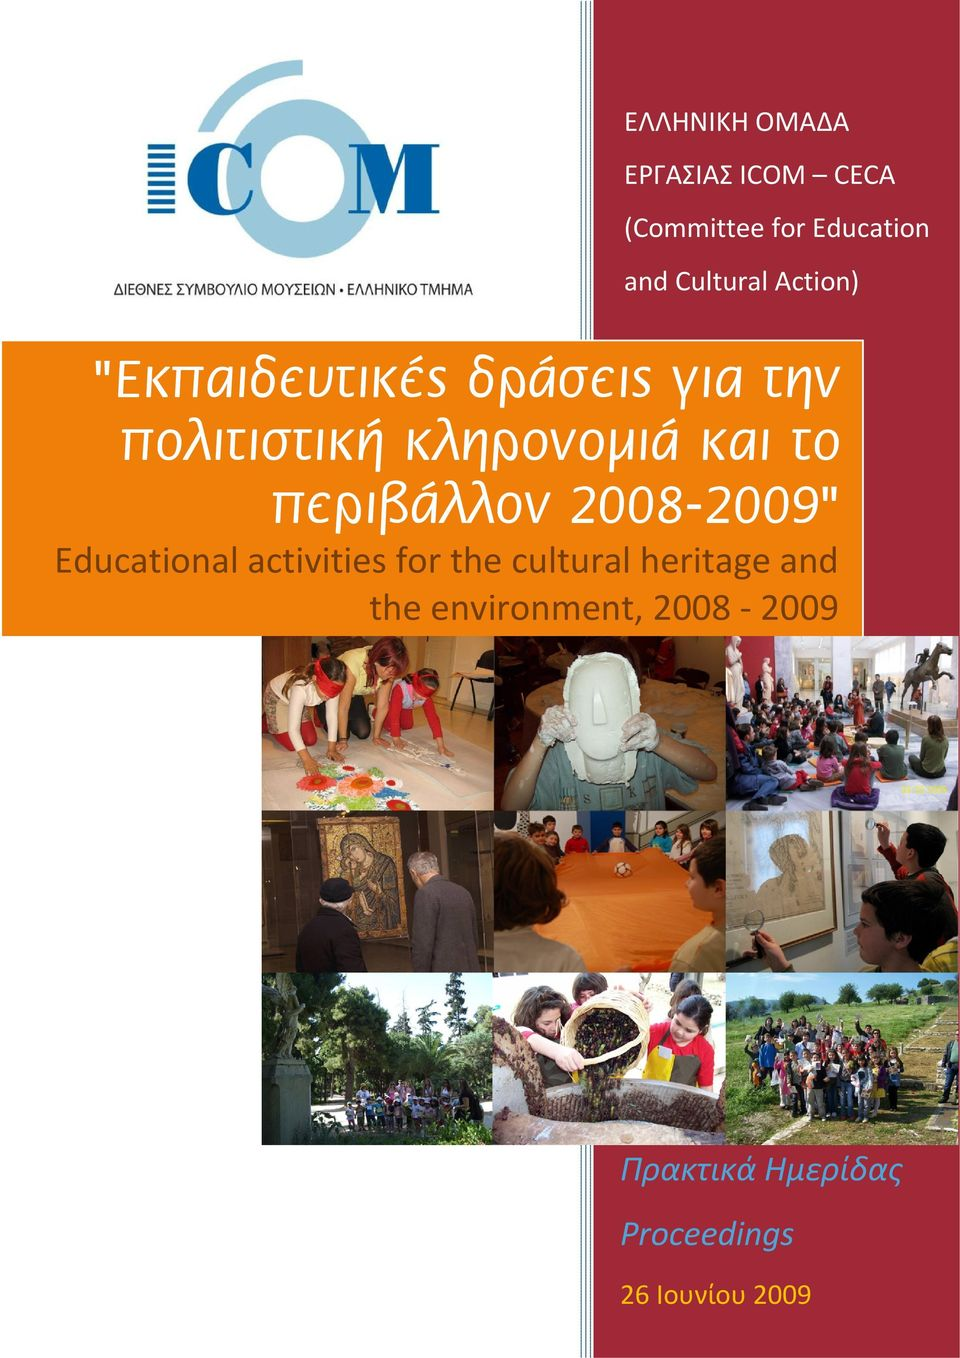 "περιβάλλον 2008-2009"" Educational activities for the cultural heritage"